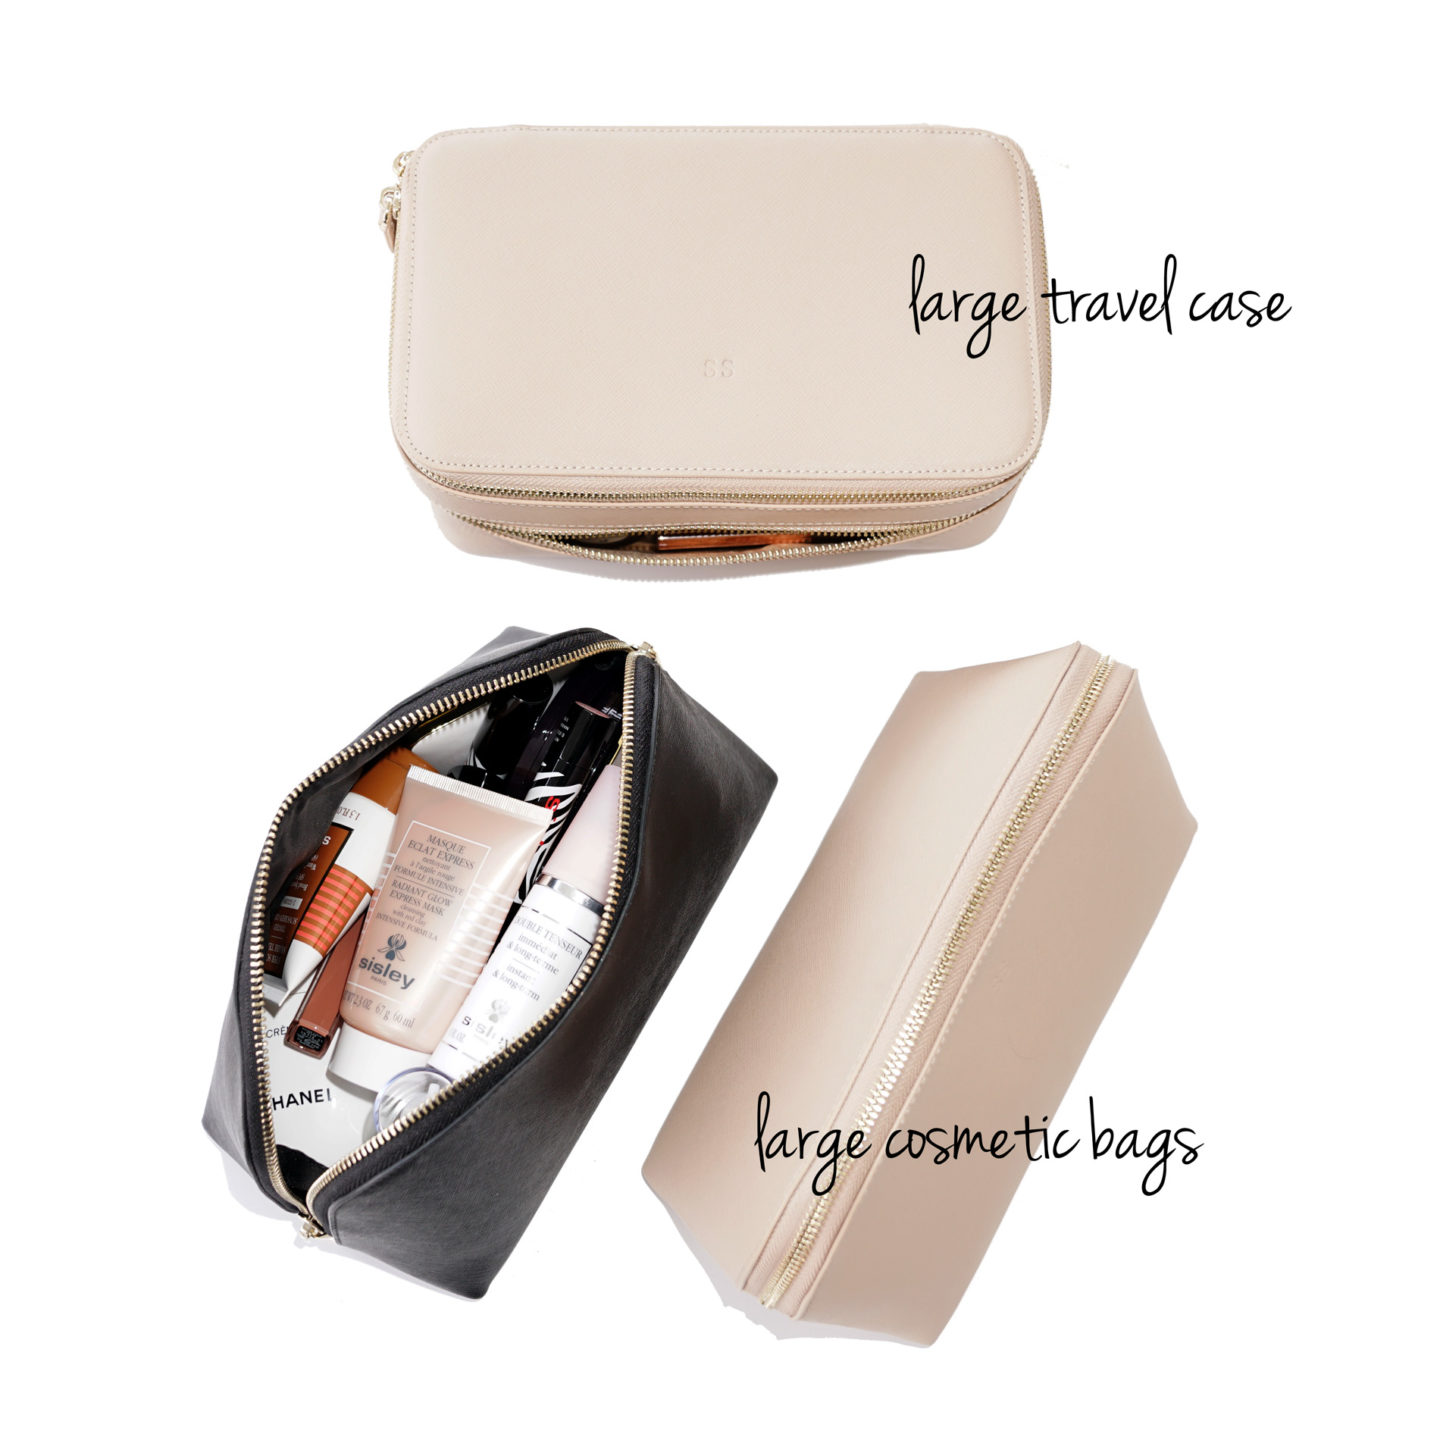 The Daily Edited Large Cosmetic Case and Travel Case